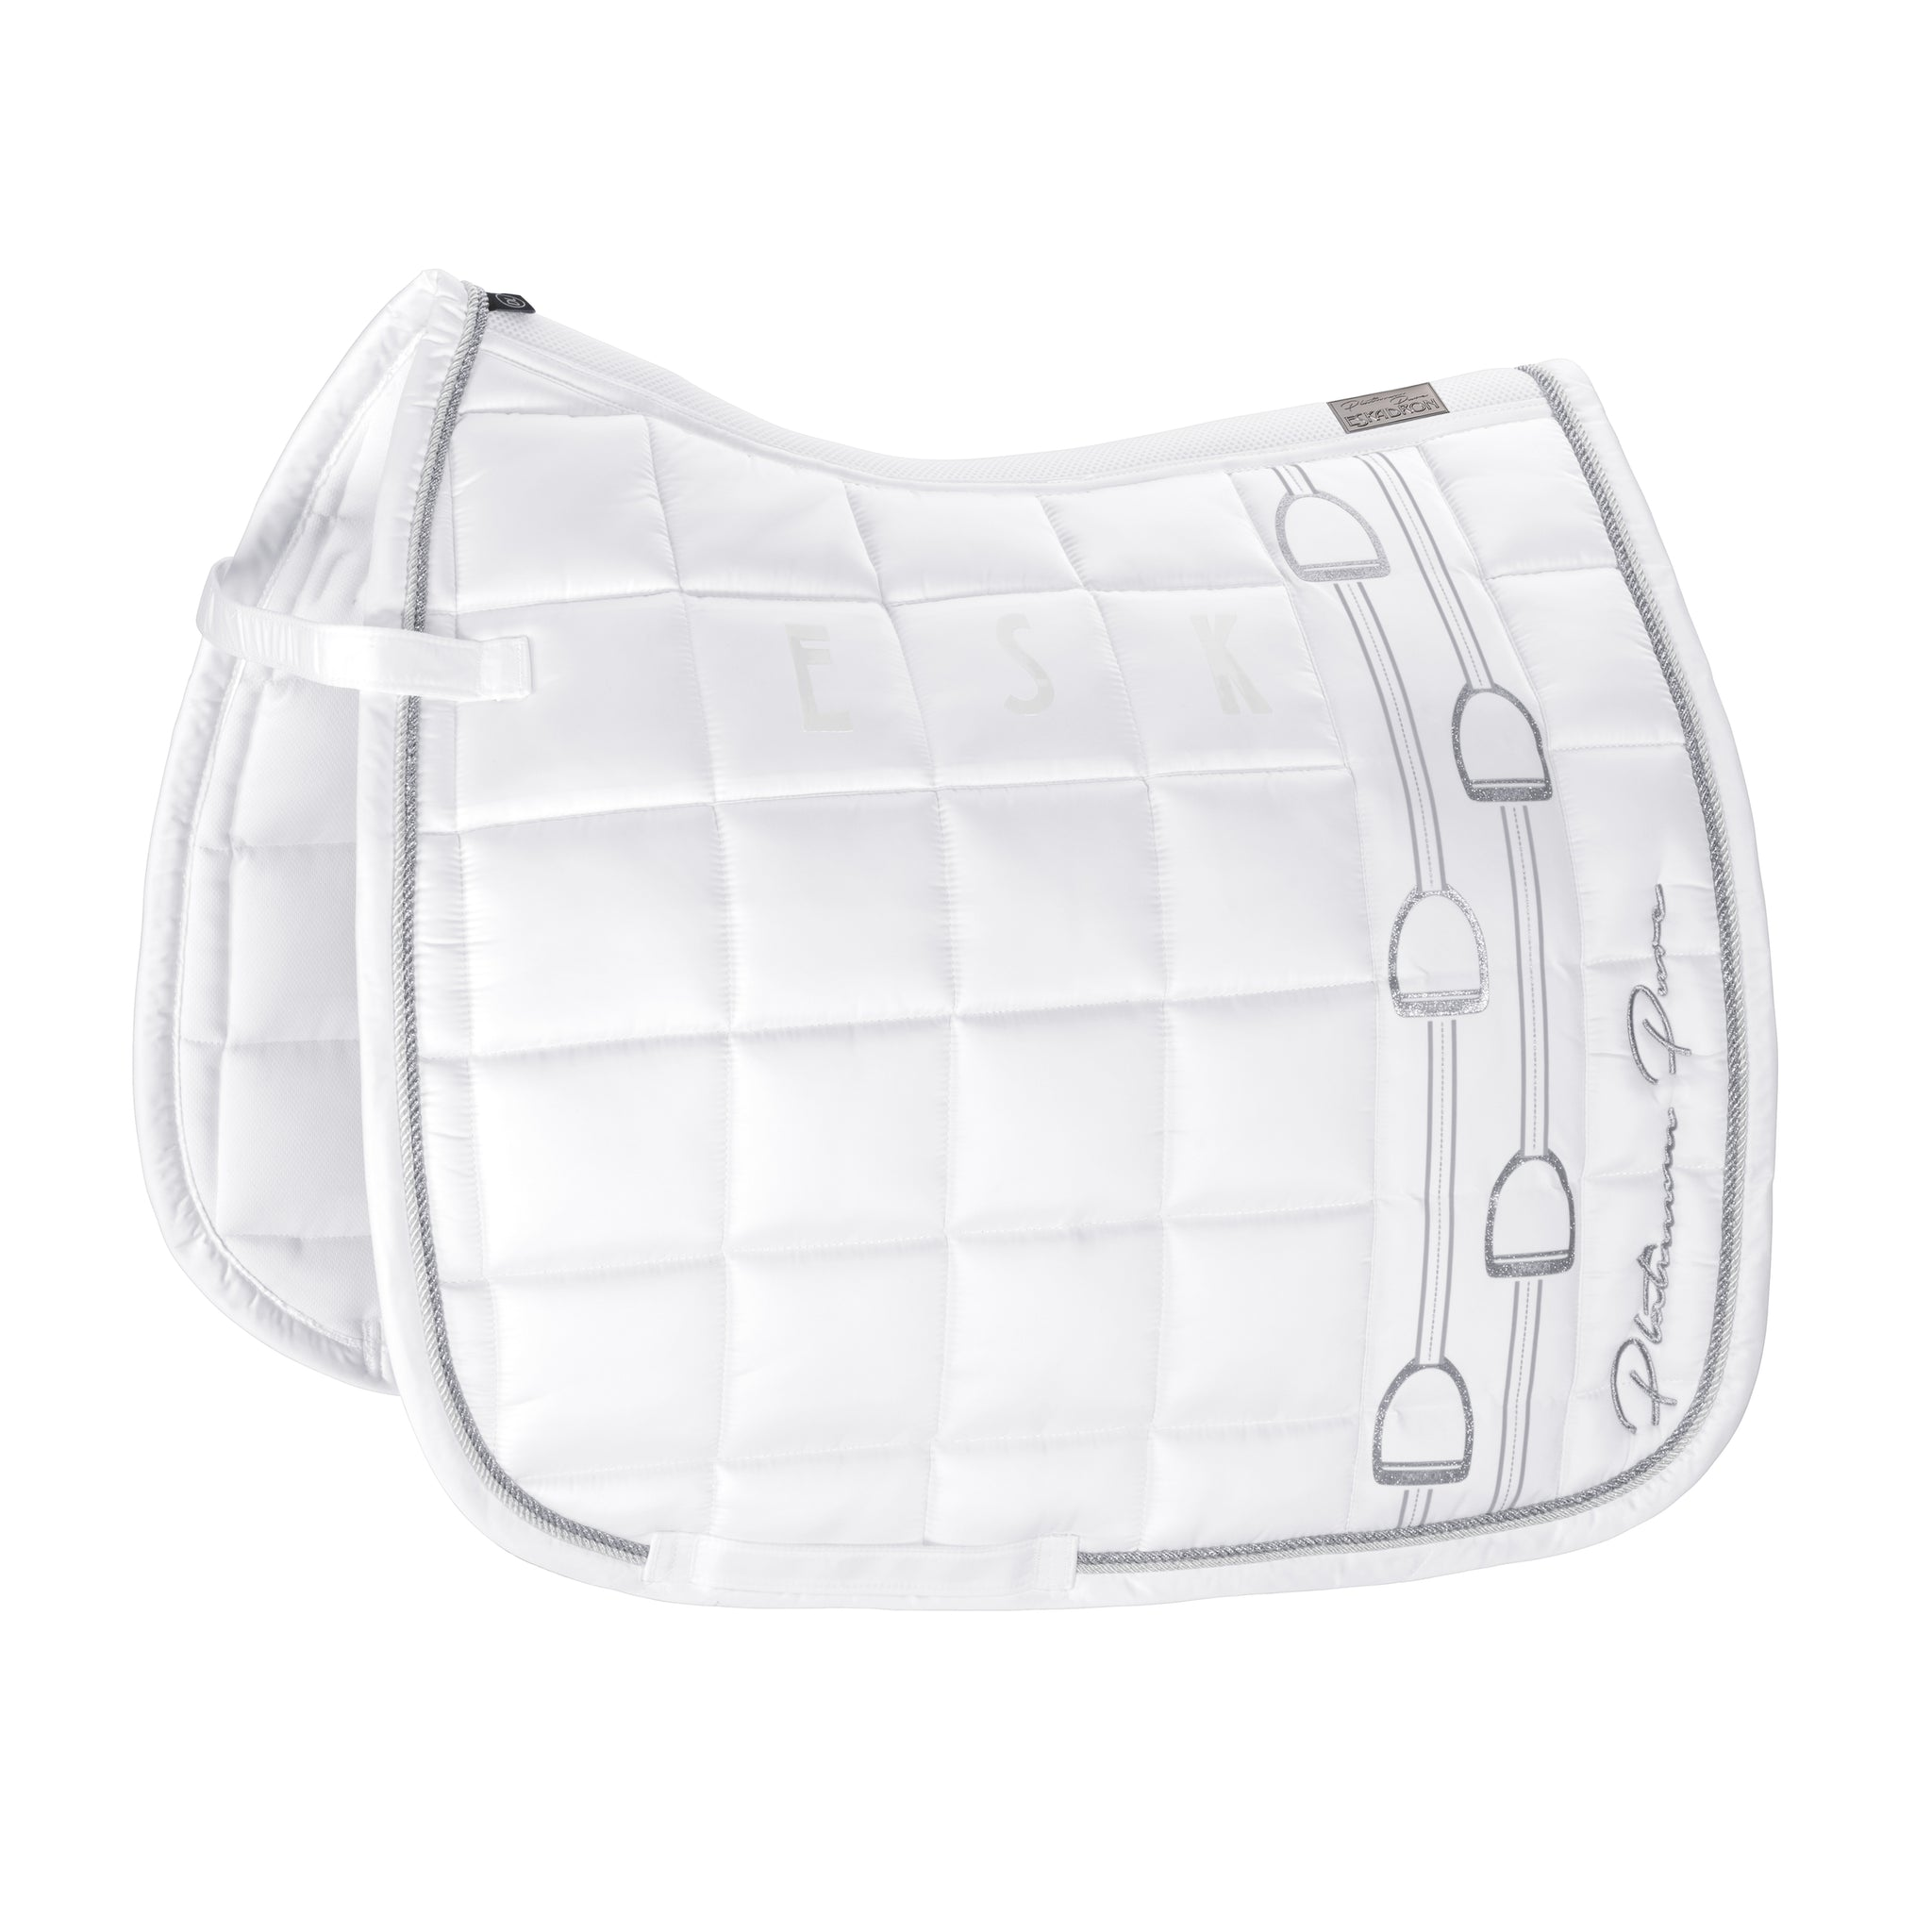 Platinum Pure Glossy Big Square Saddlepad - Dressage White